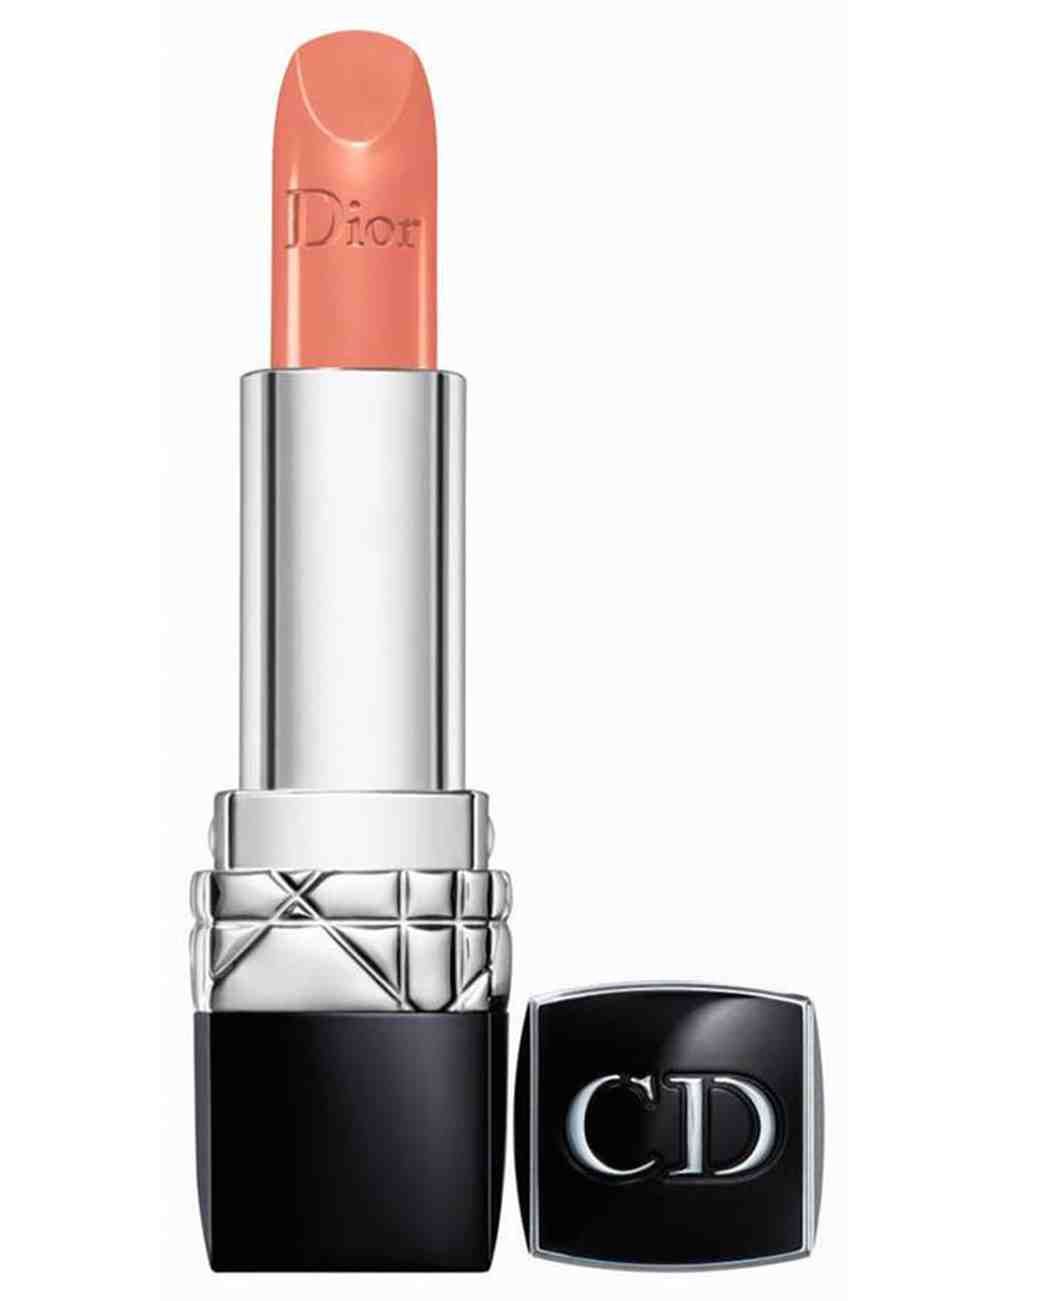 2014 Big Day Beauty Awards Our Makeup Essentials Martha Stewart Zoya Cosmetics Lip Paint Pure Red Weddings